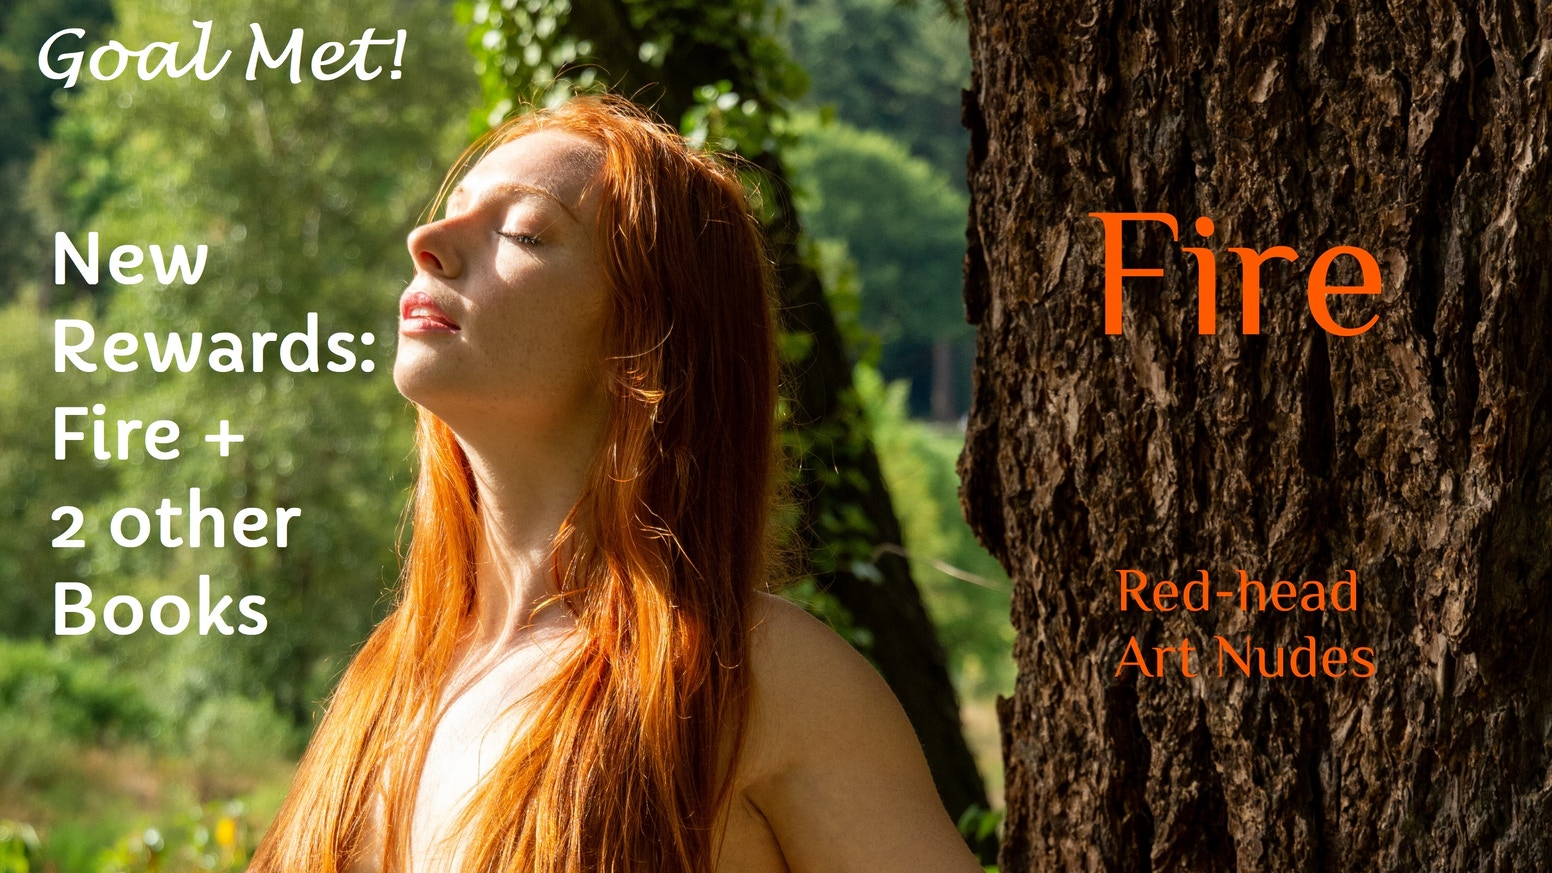 Fire is a photobook of art nude images of red-haired women, which will ignite your senses! Pre-order still available on my website.